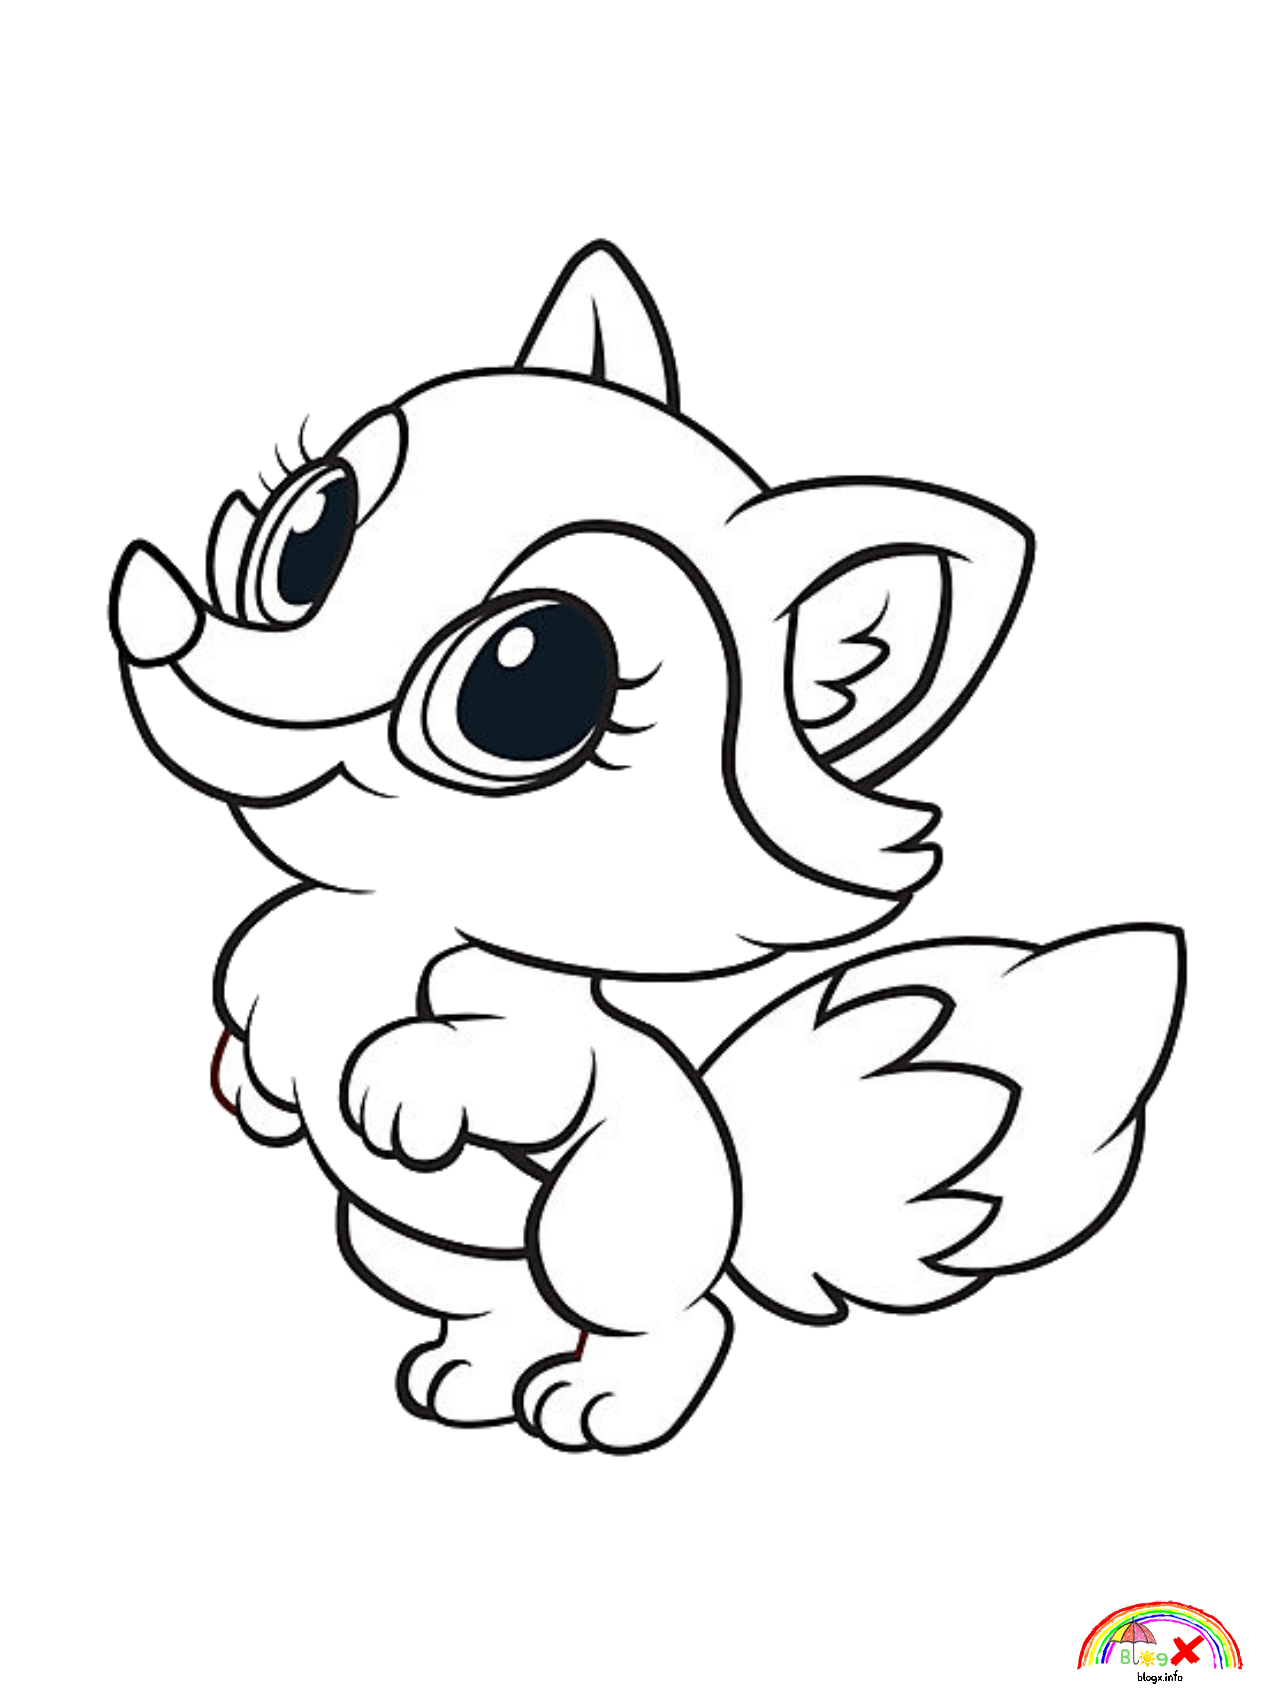 Pin By Collette Fenlason On Dibujar Animalitos Fox Coloring Page Cute Coloring Pages Animal Coloring Pages